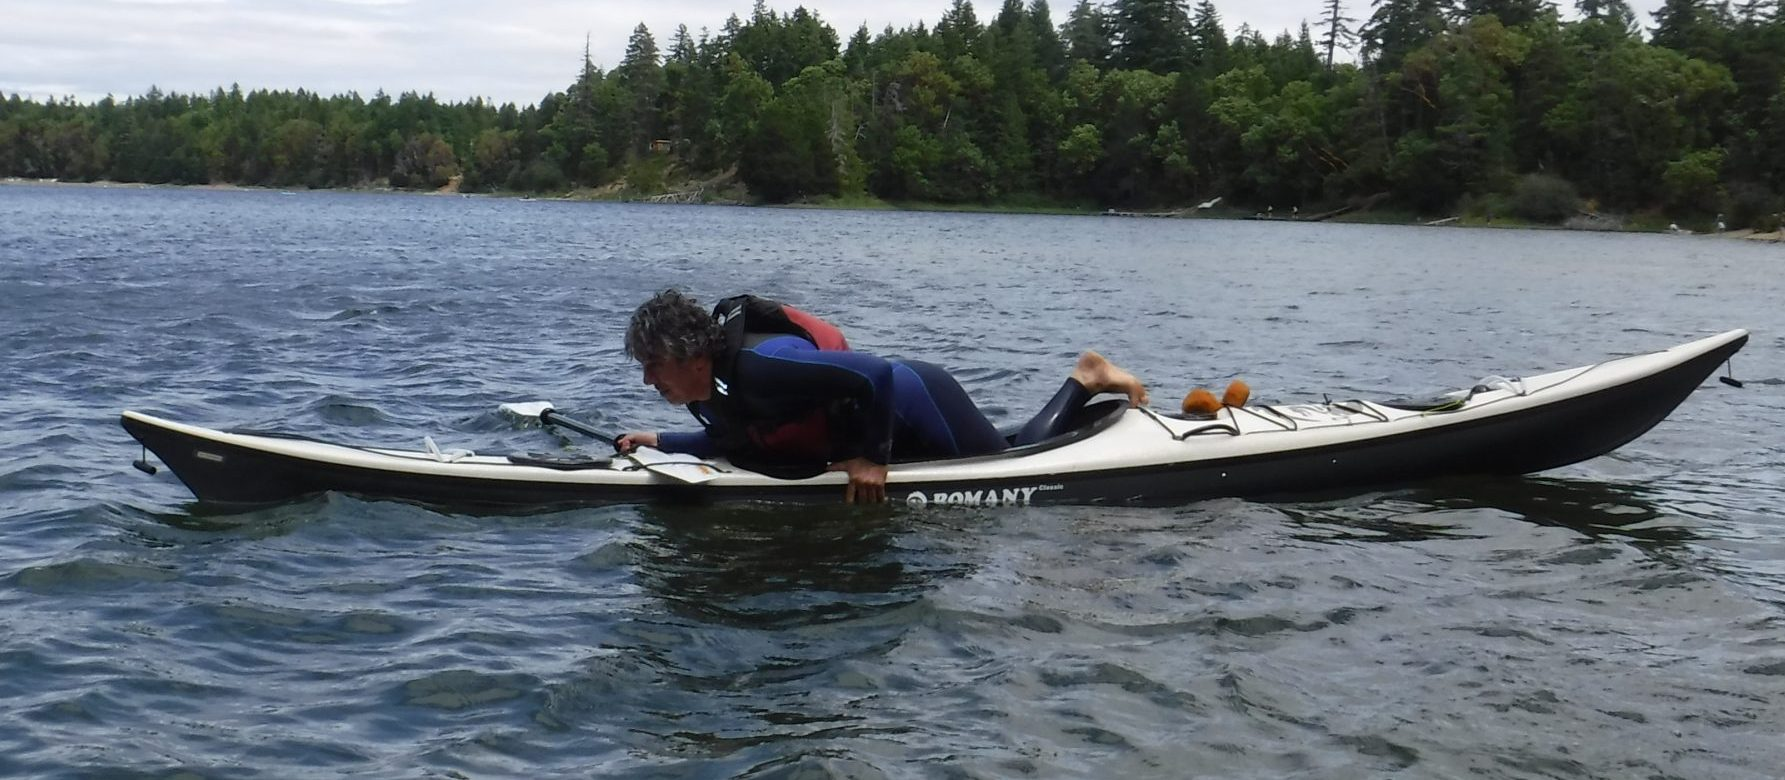 Re-Entering a Kayak after a capsize is an essential safety skill.